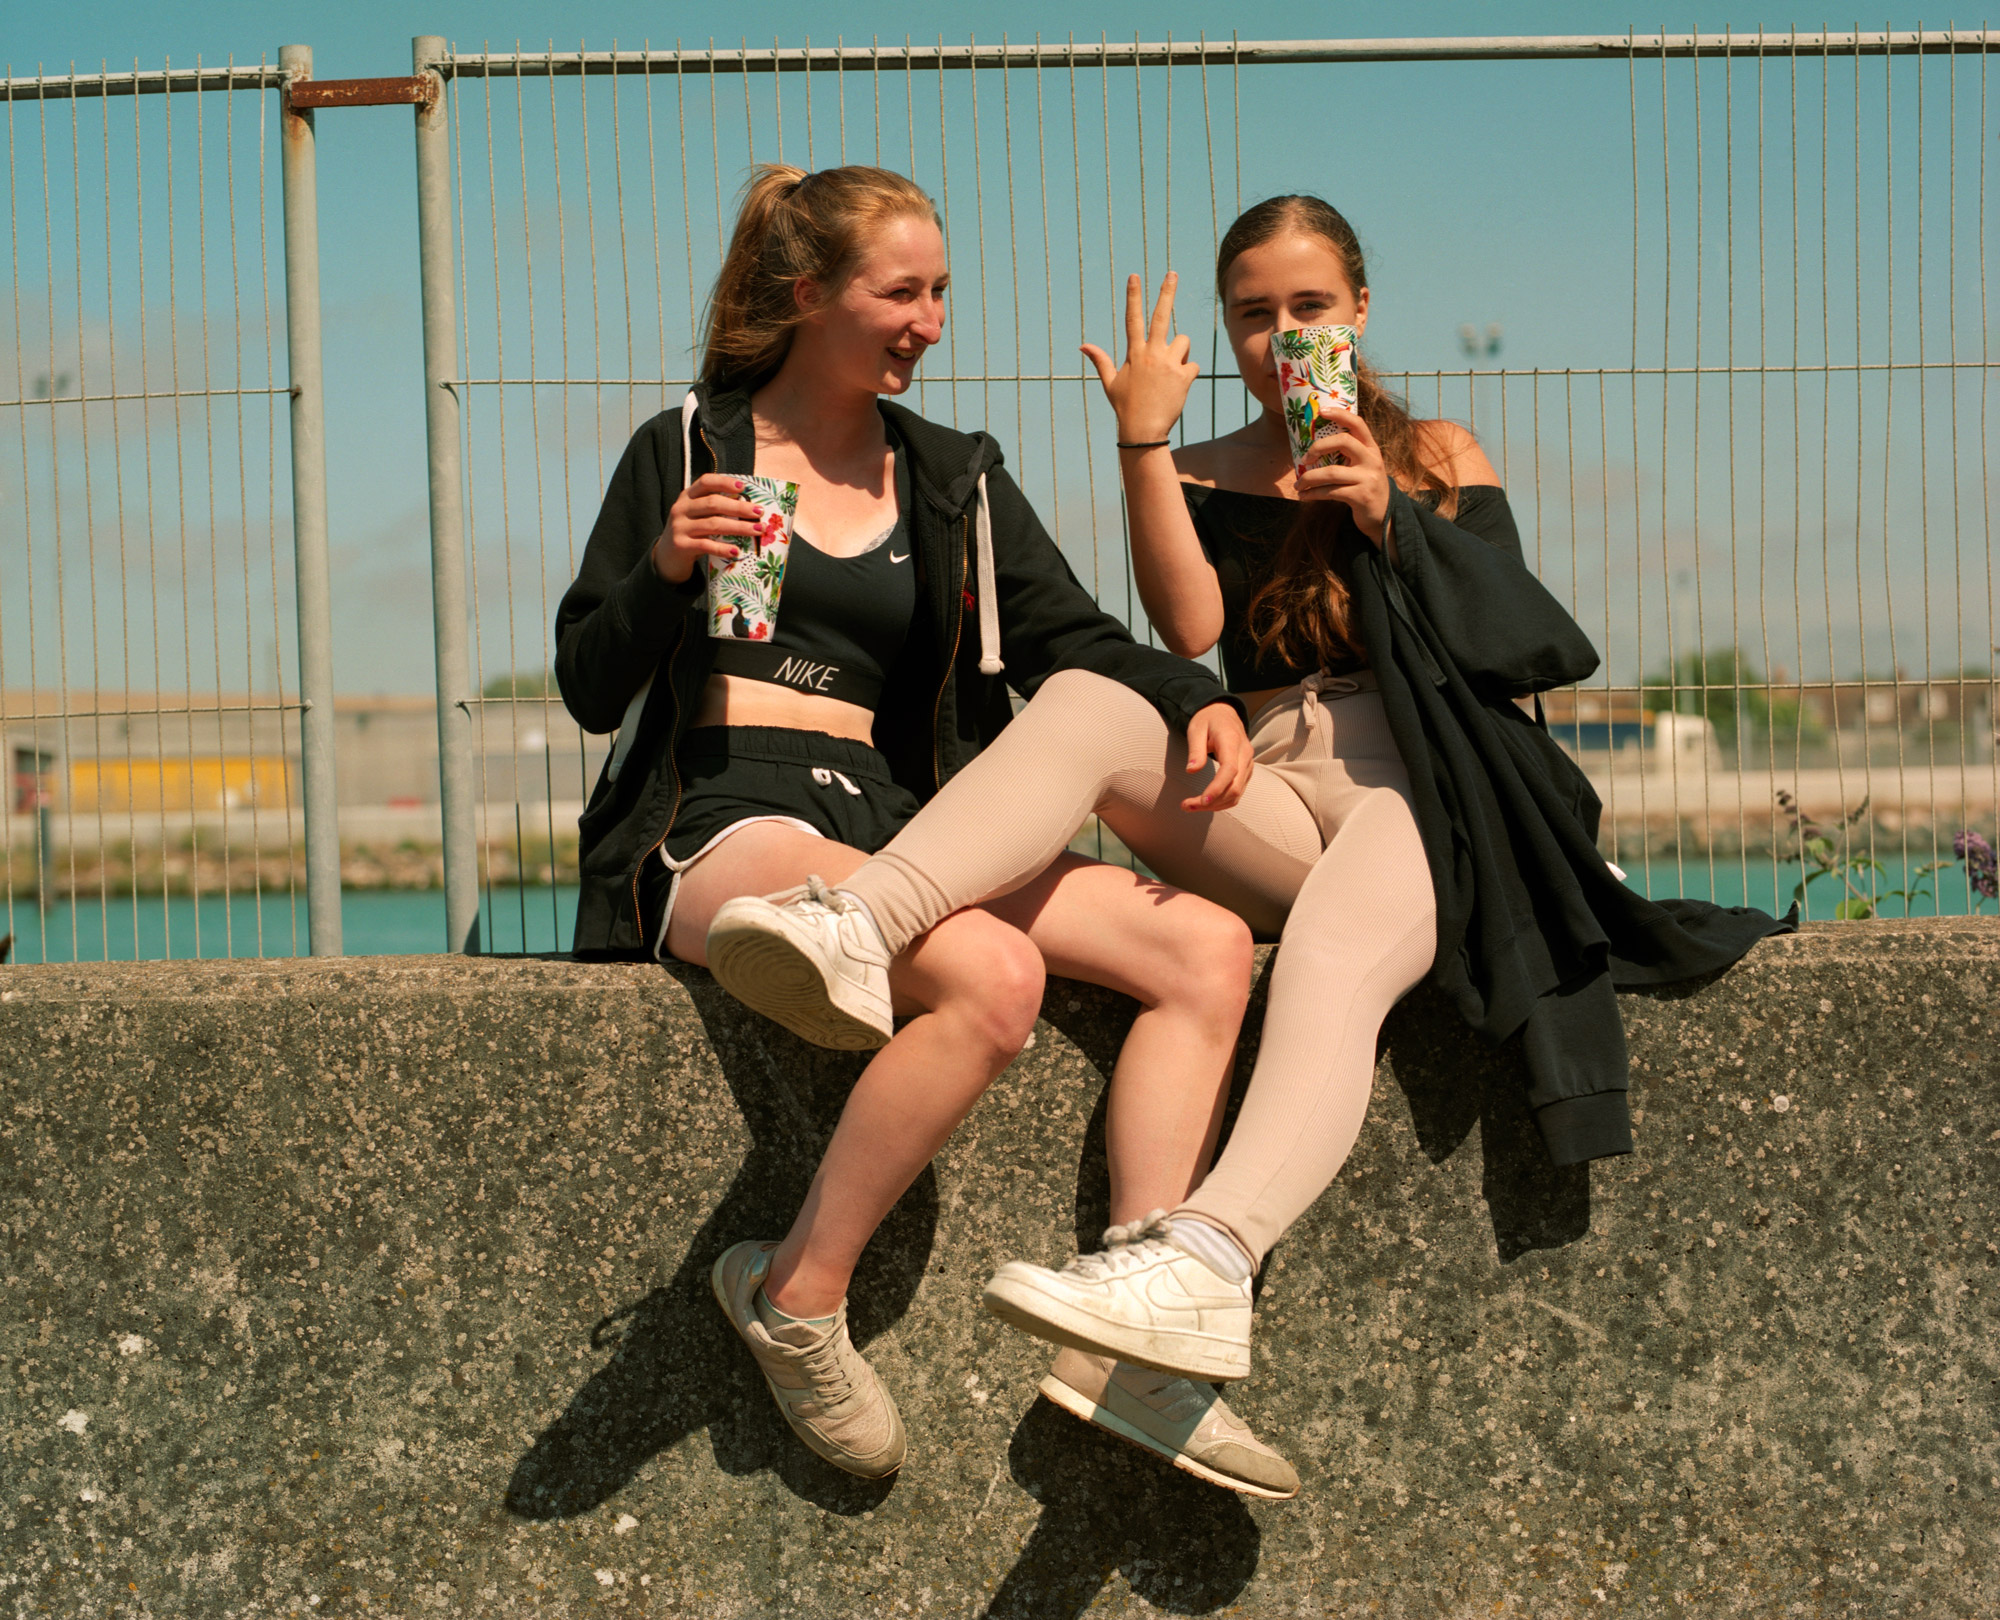 Two Drunk Girls, Observations Series, Photography By Ioannis Koussertari